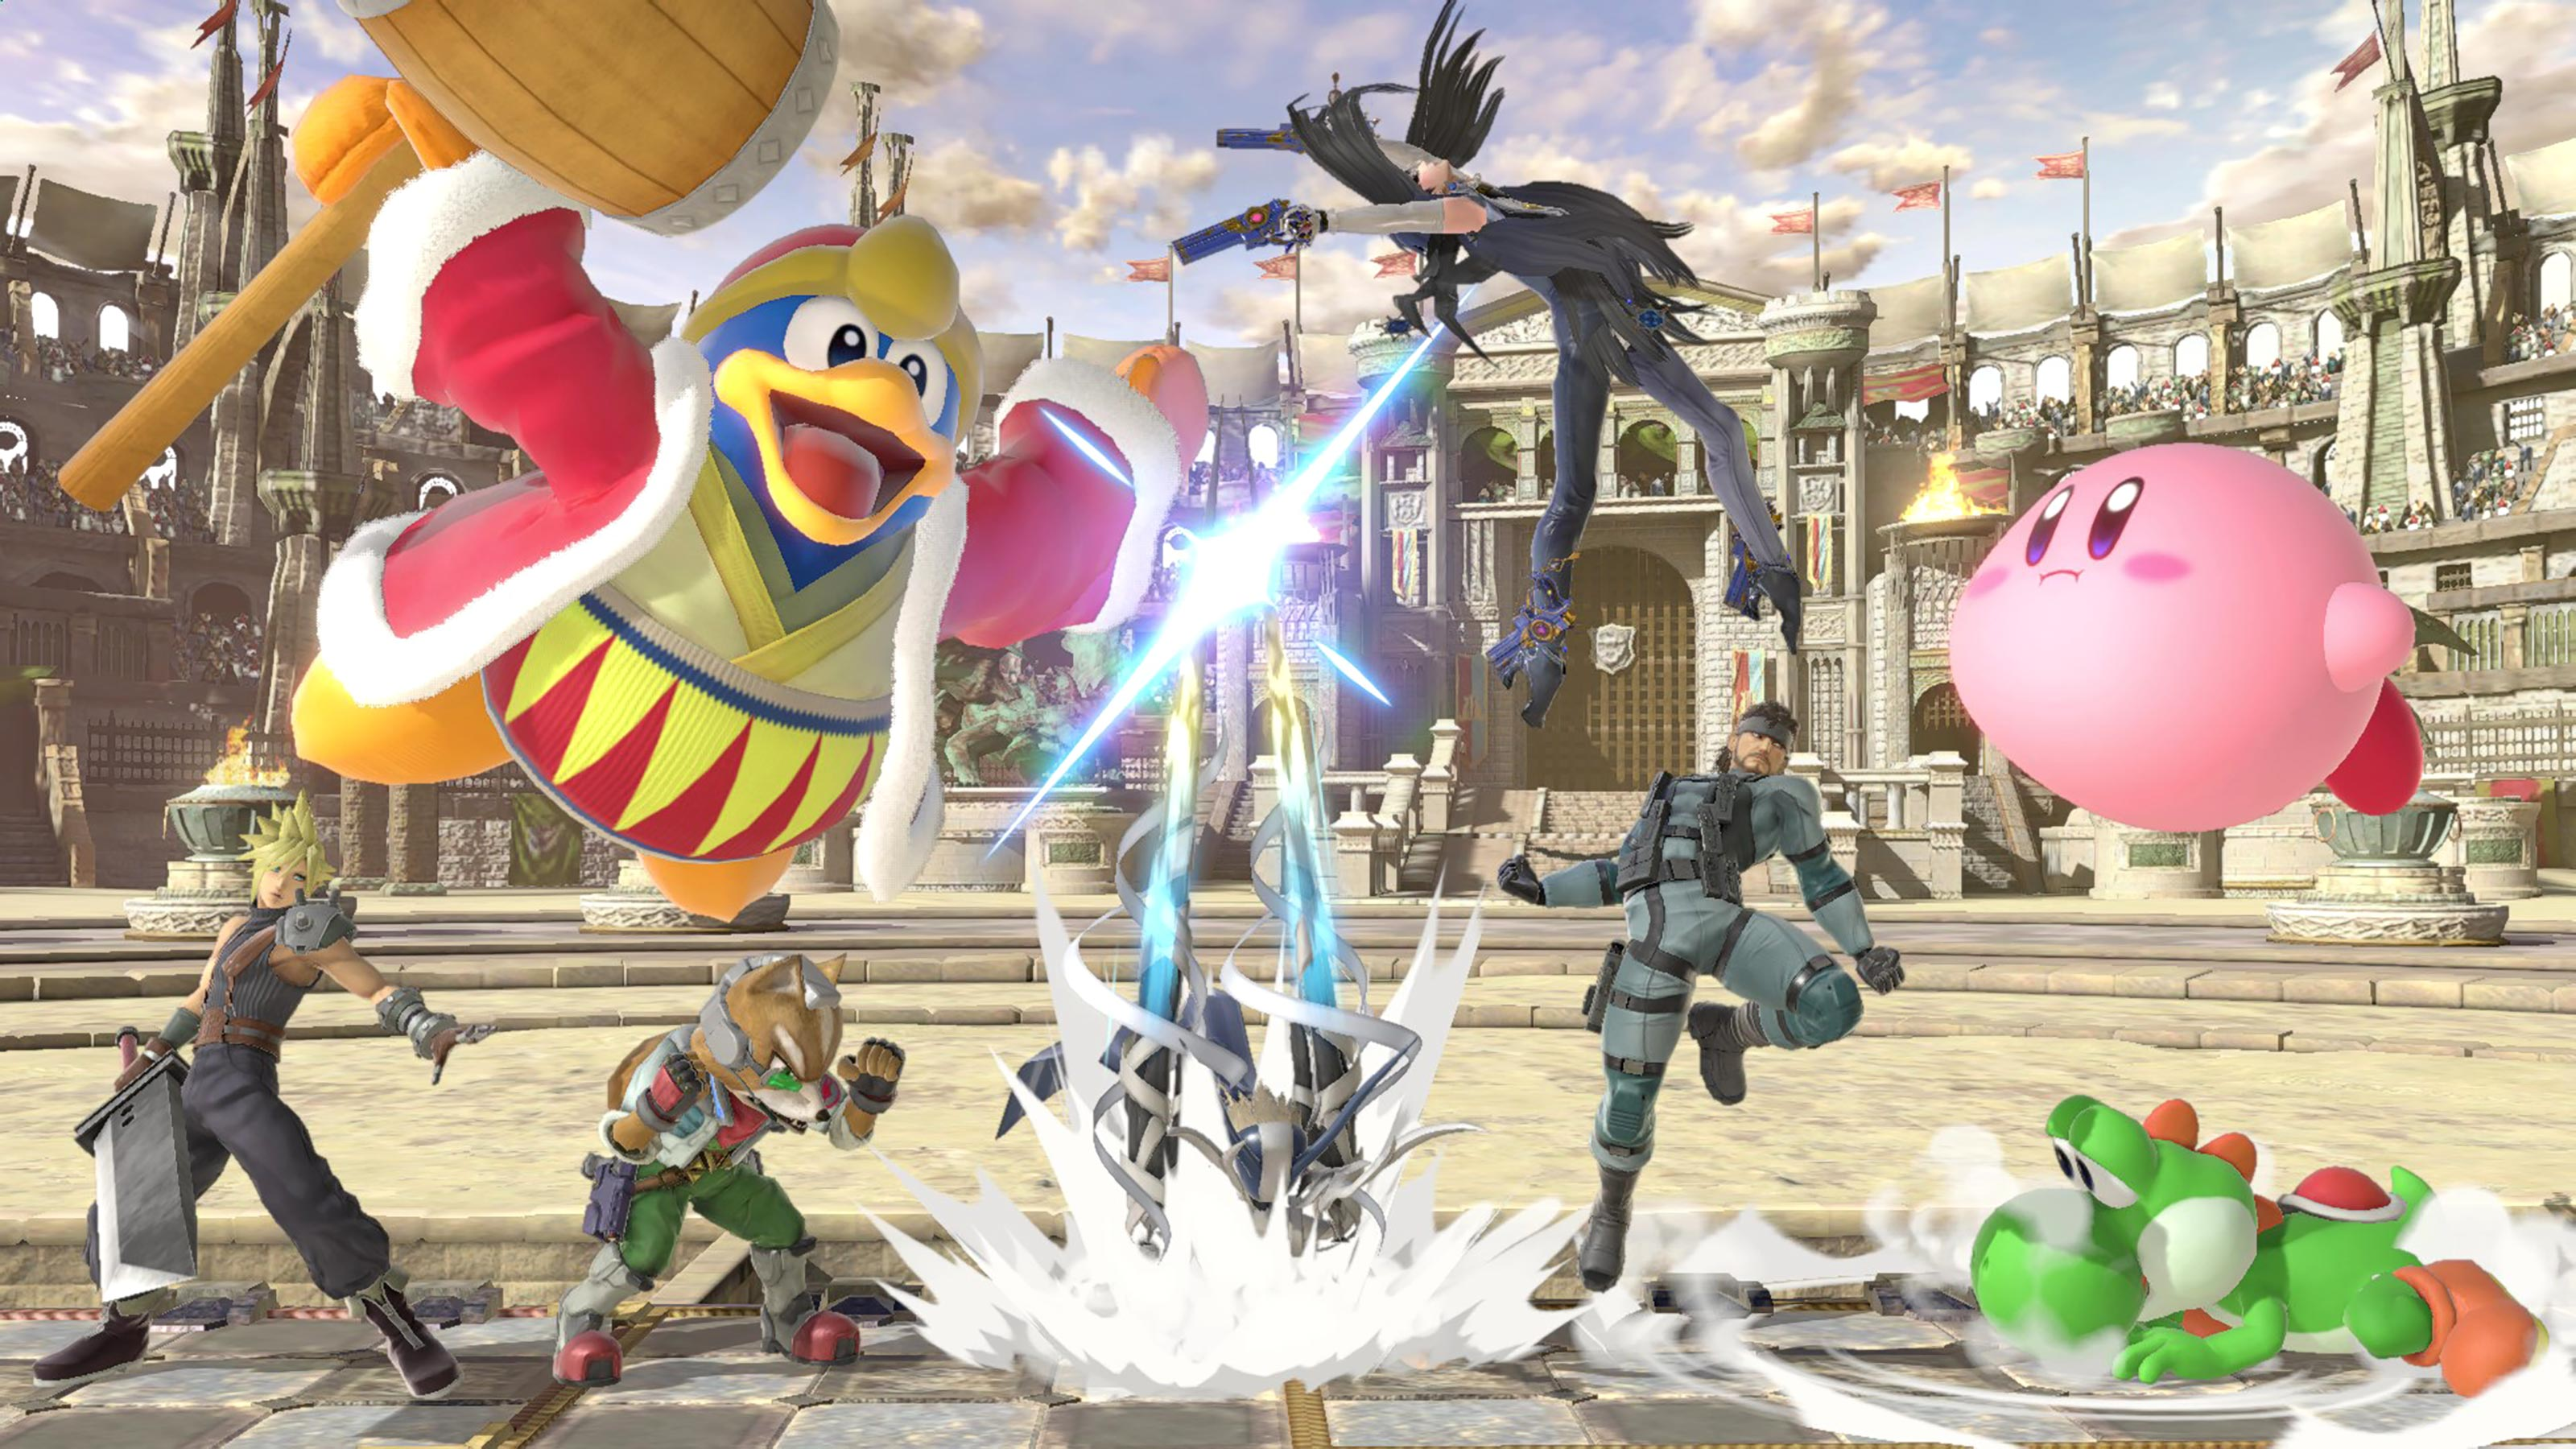 Super Smash Bros  Ultimate download and install file size